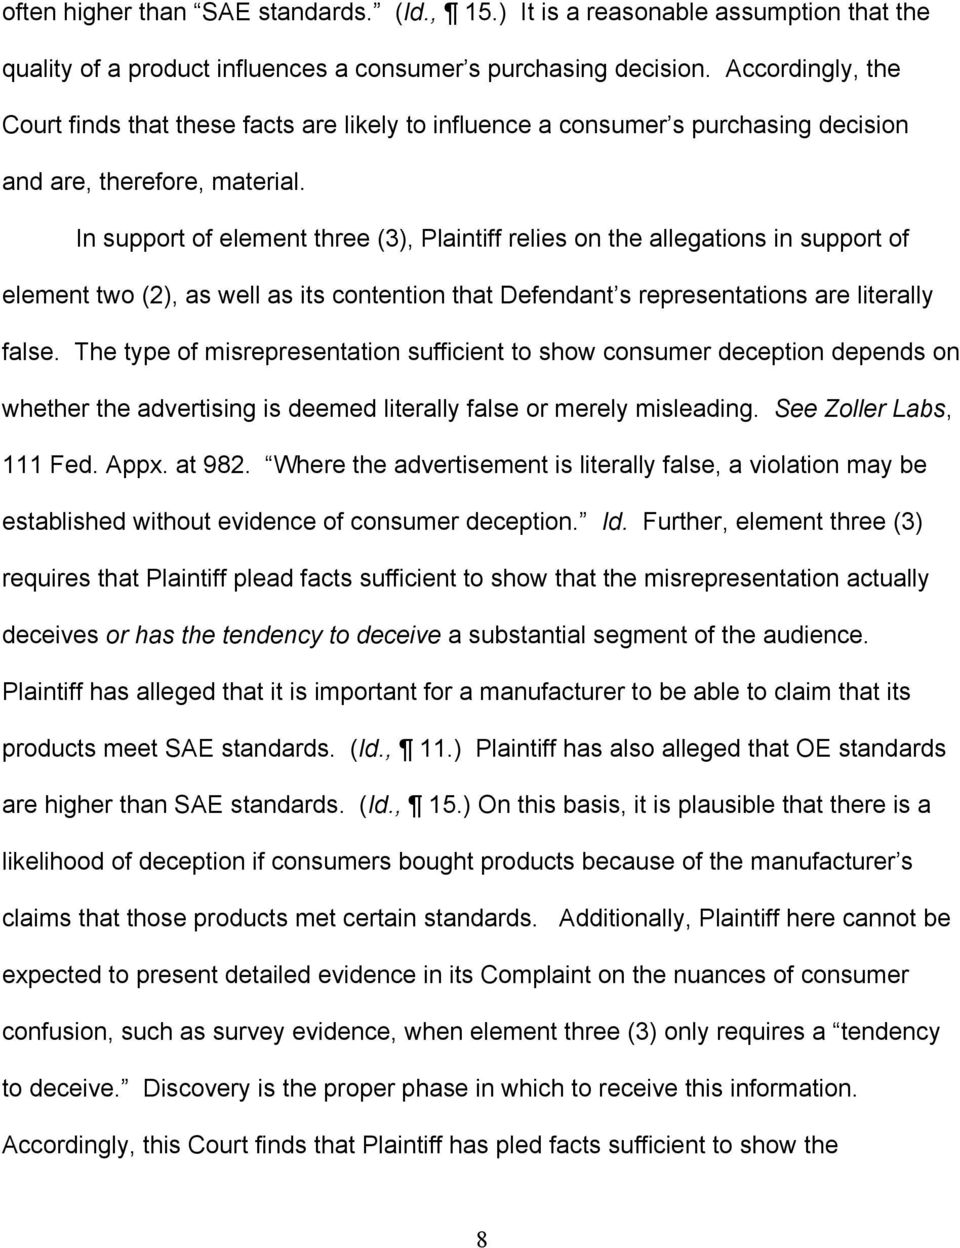 In support of element three (3), Plaintiff relies on the allegations in support of element two (2), as well as its contention that Defendant s representations are literally false.